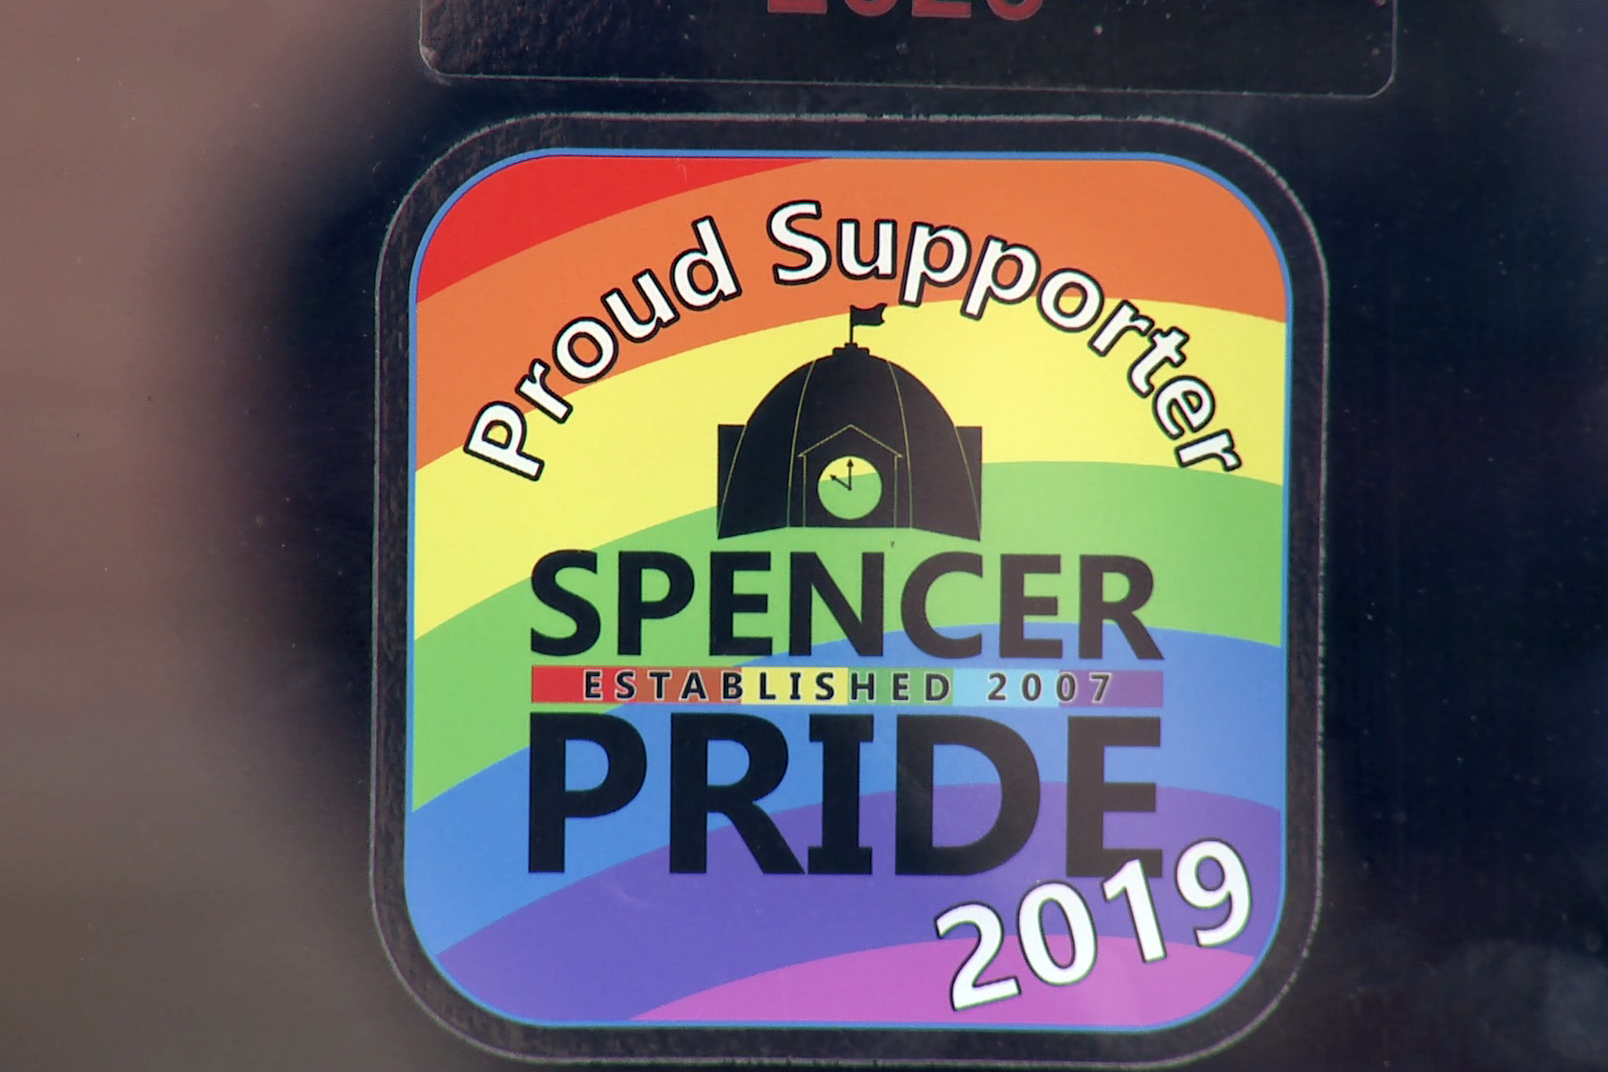 Spencer Pride Business Ally